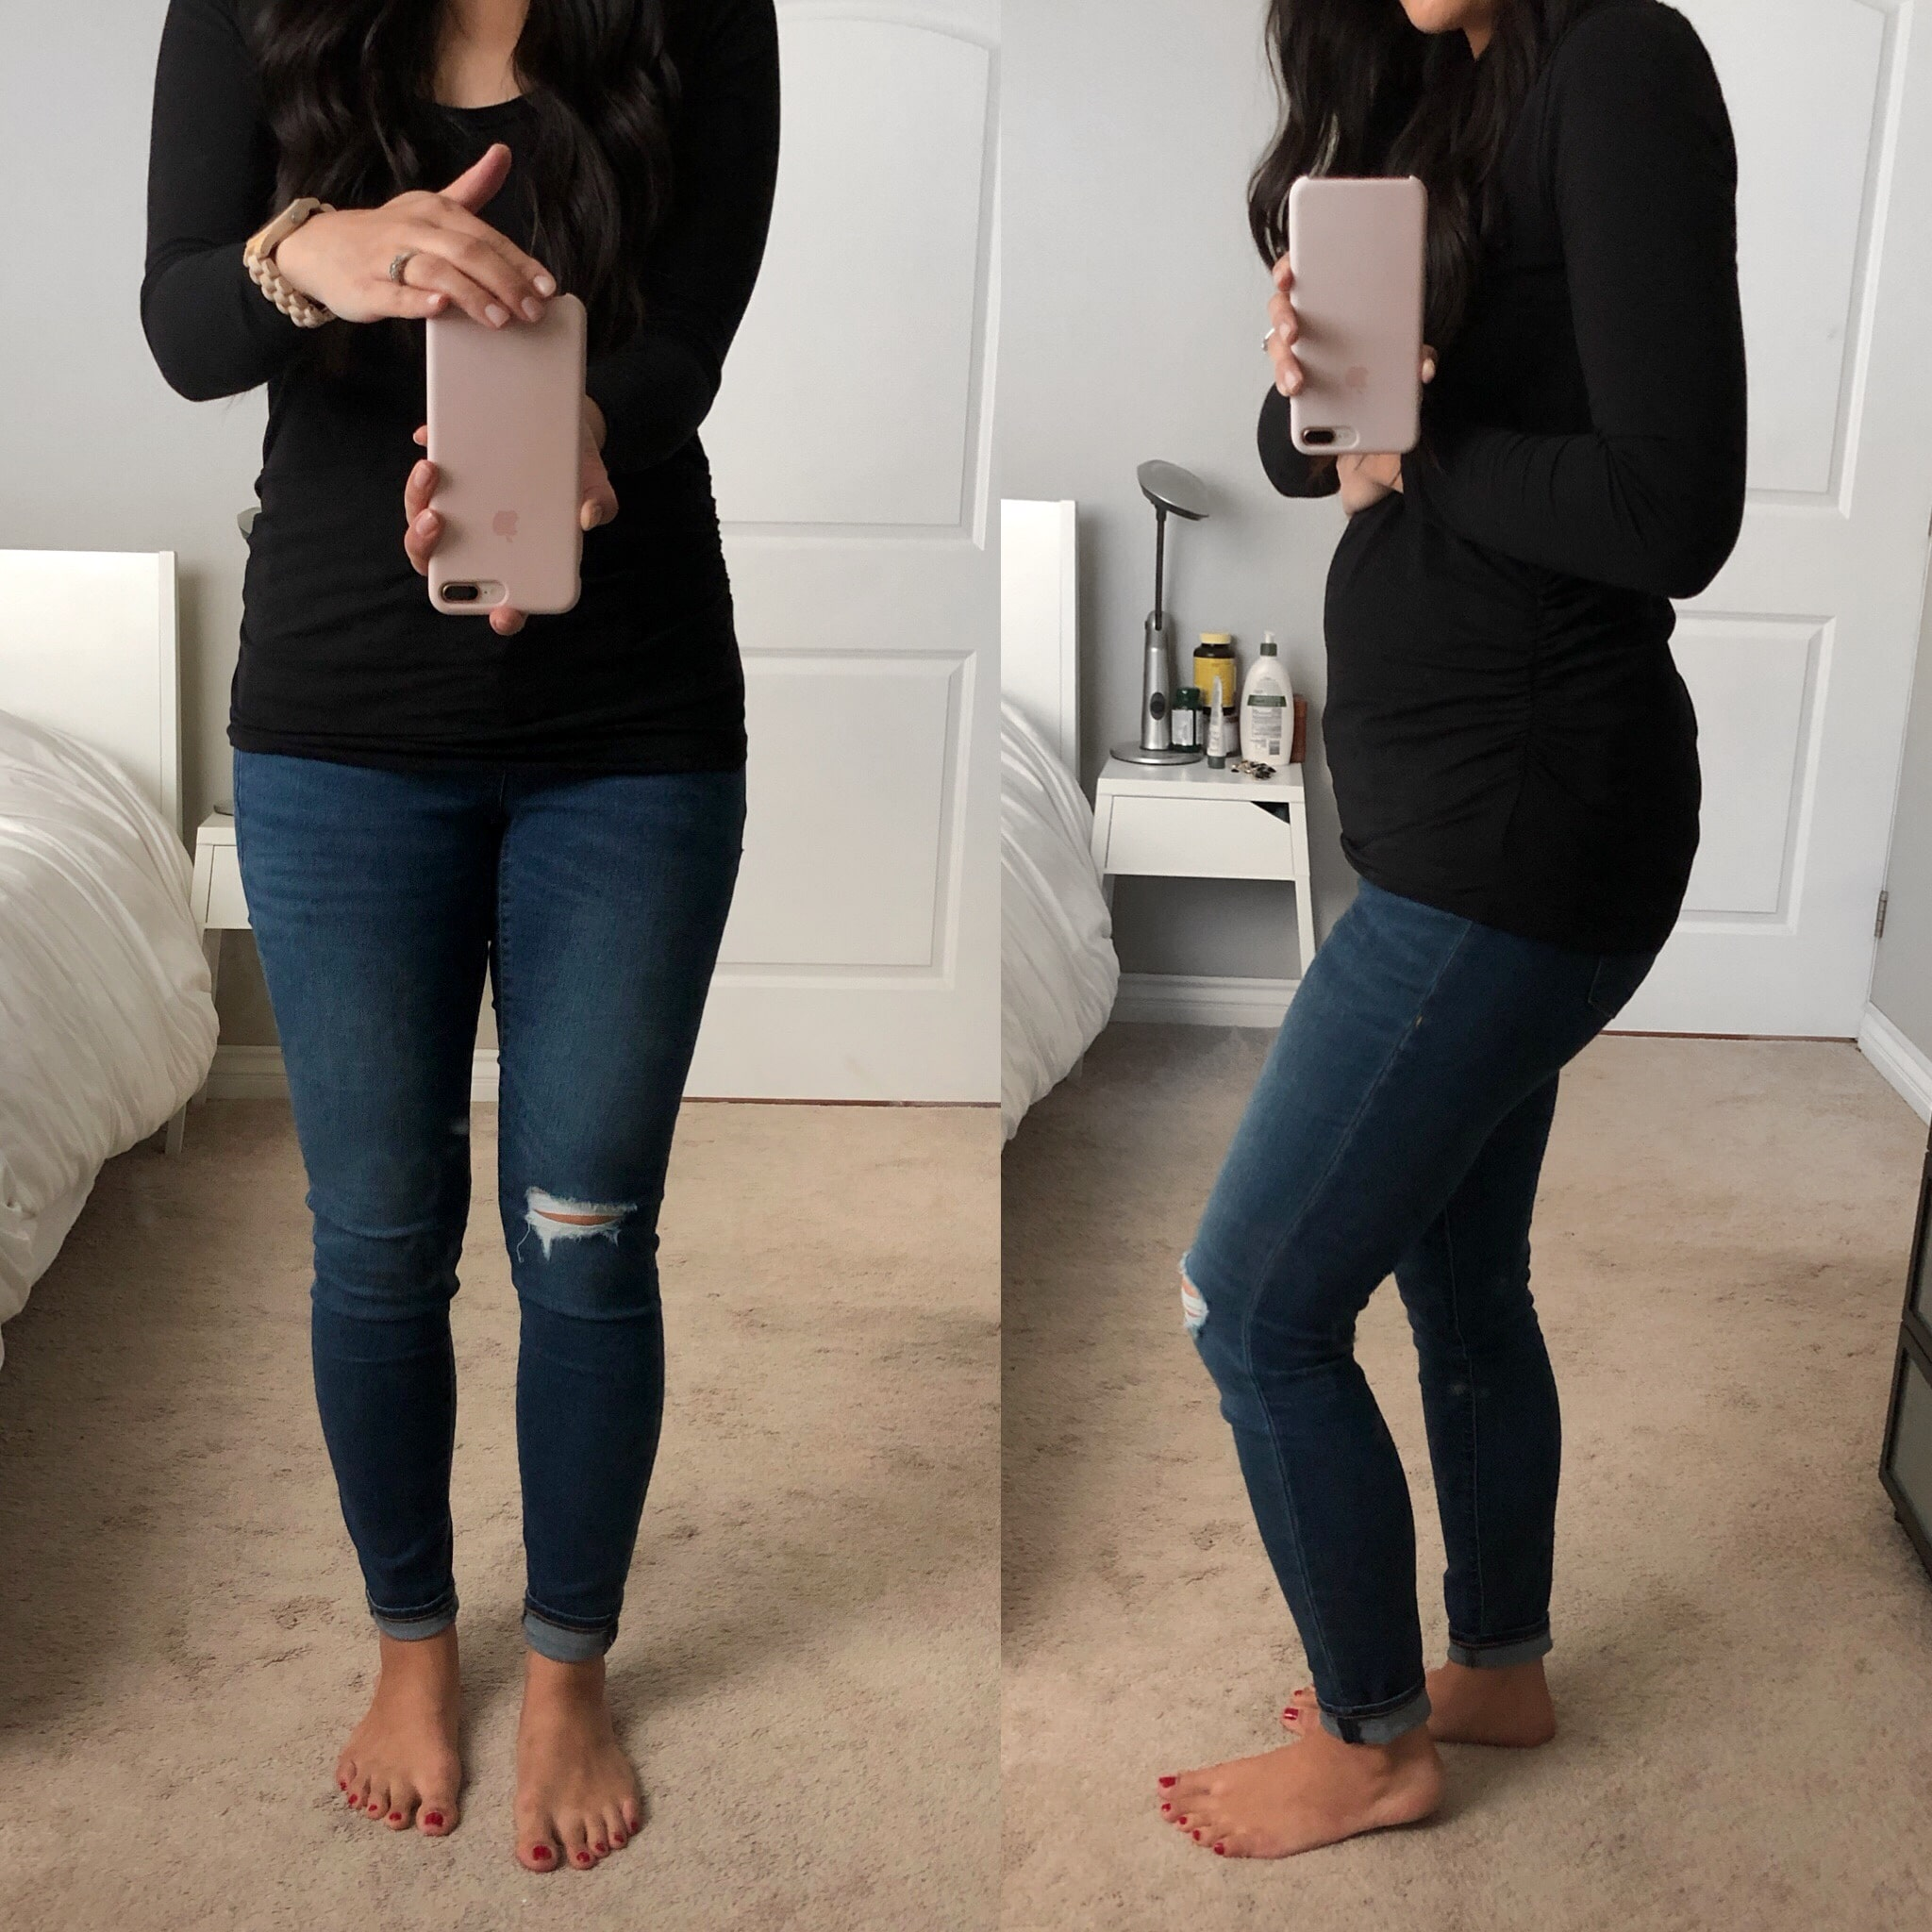 Pretentious Early Pregnancy Maternity Jeans Canada Maternity Jeans Distressed Black Tee Maternity Skinnies Black Maternity Clos Reviews Dresses Maternity Jeans baby Best Maternity Jeans